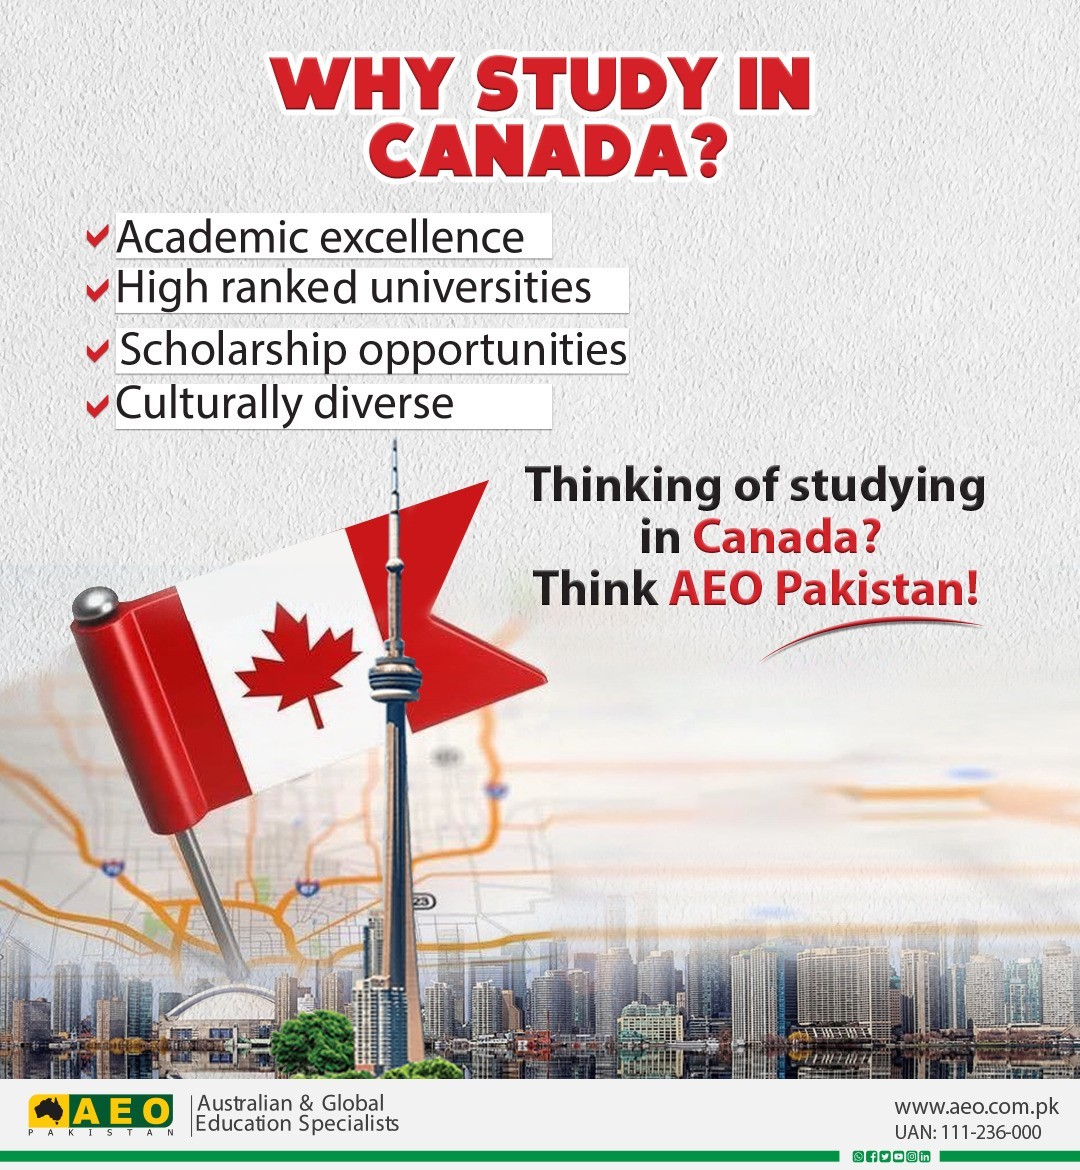 Thinking of studying in Canada? Think AEO Pakistan!